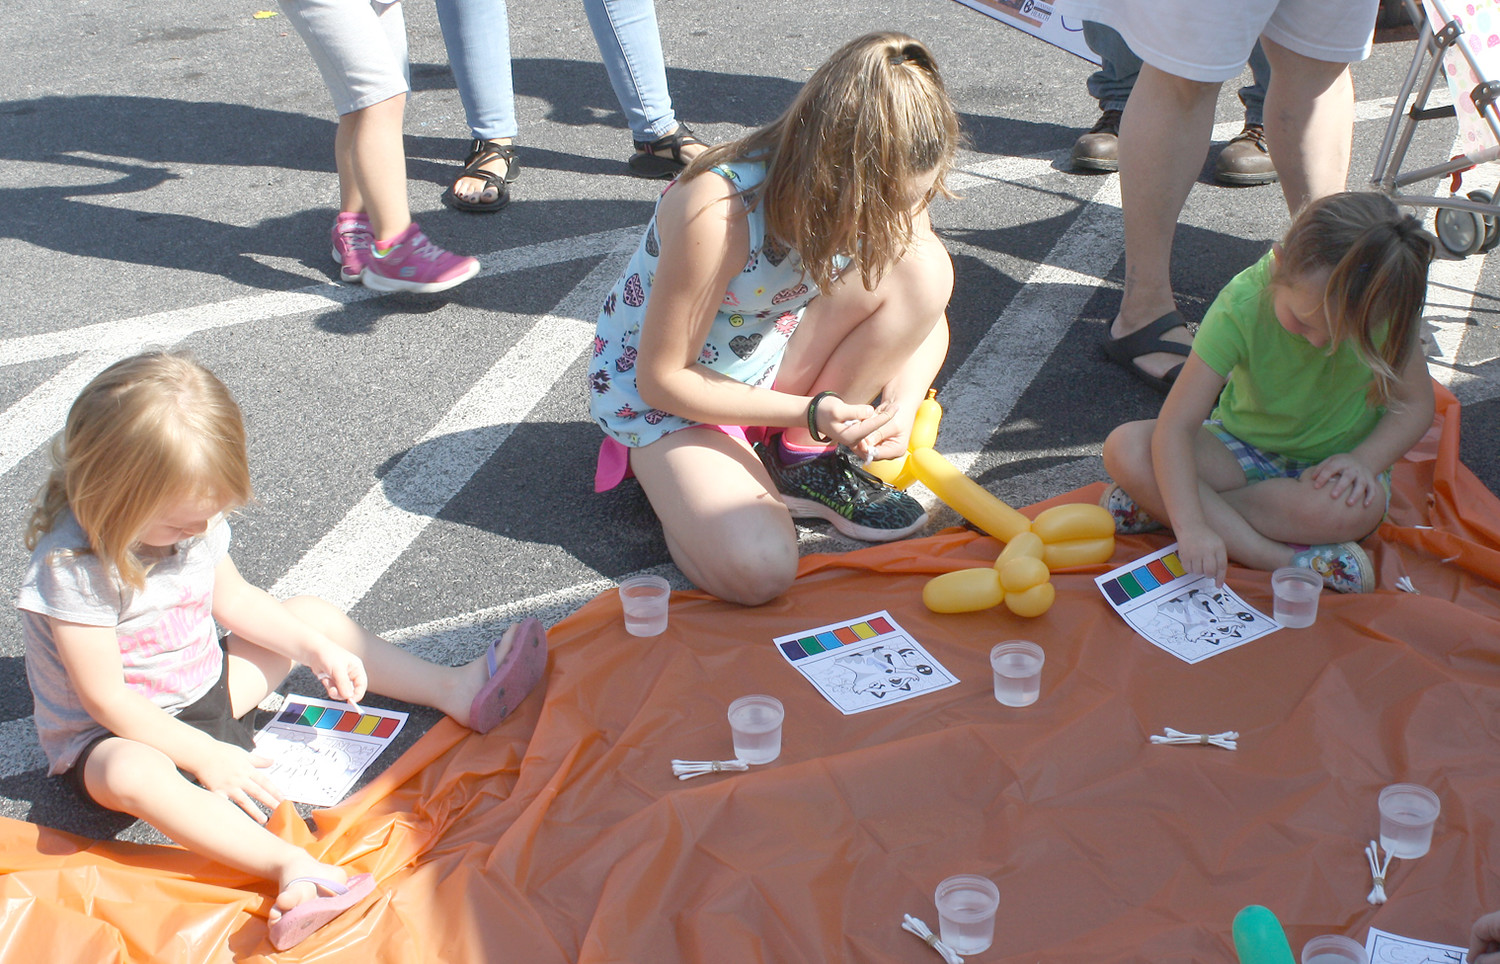 THESE THREE YOUNGSTERS, of varying sizes, were busy with the opportunity to draw and color at Friday's Bradley County Health Department's third annual Fall Festival.